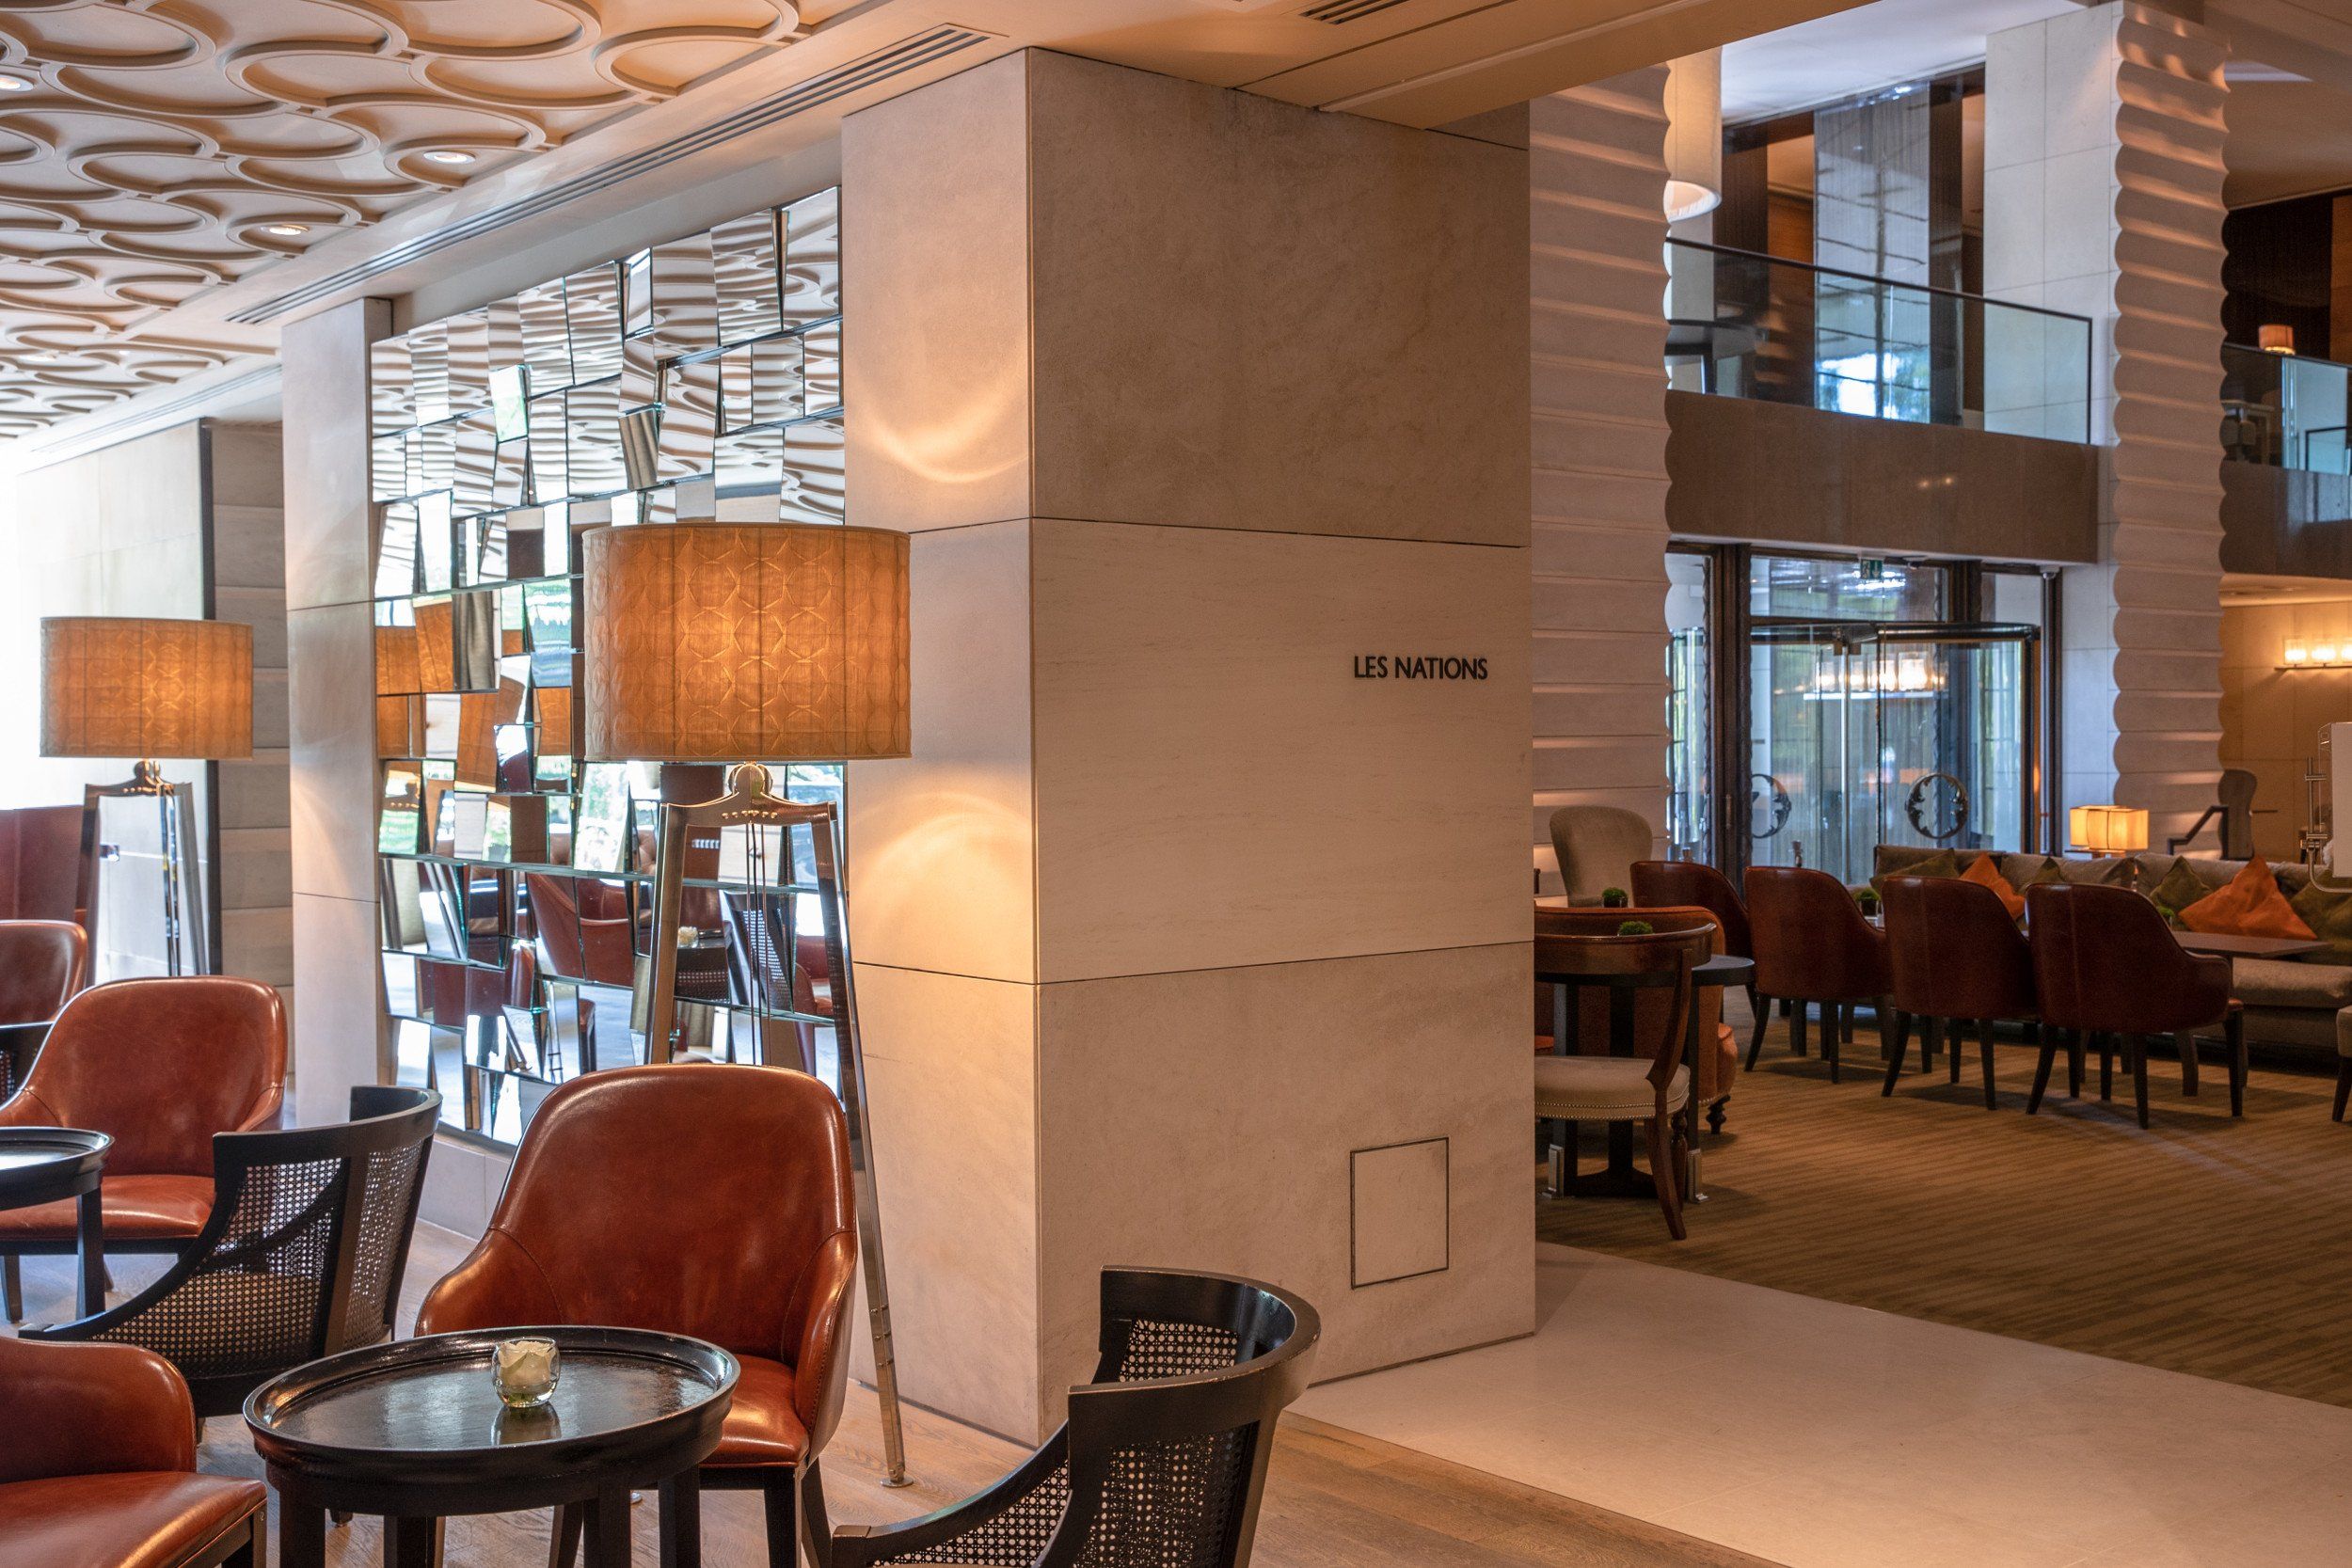 InterContinental-Geneva-Suisse-Hotel-les-Nations-bar-1